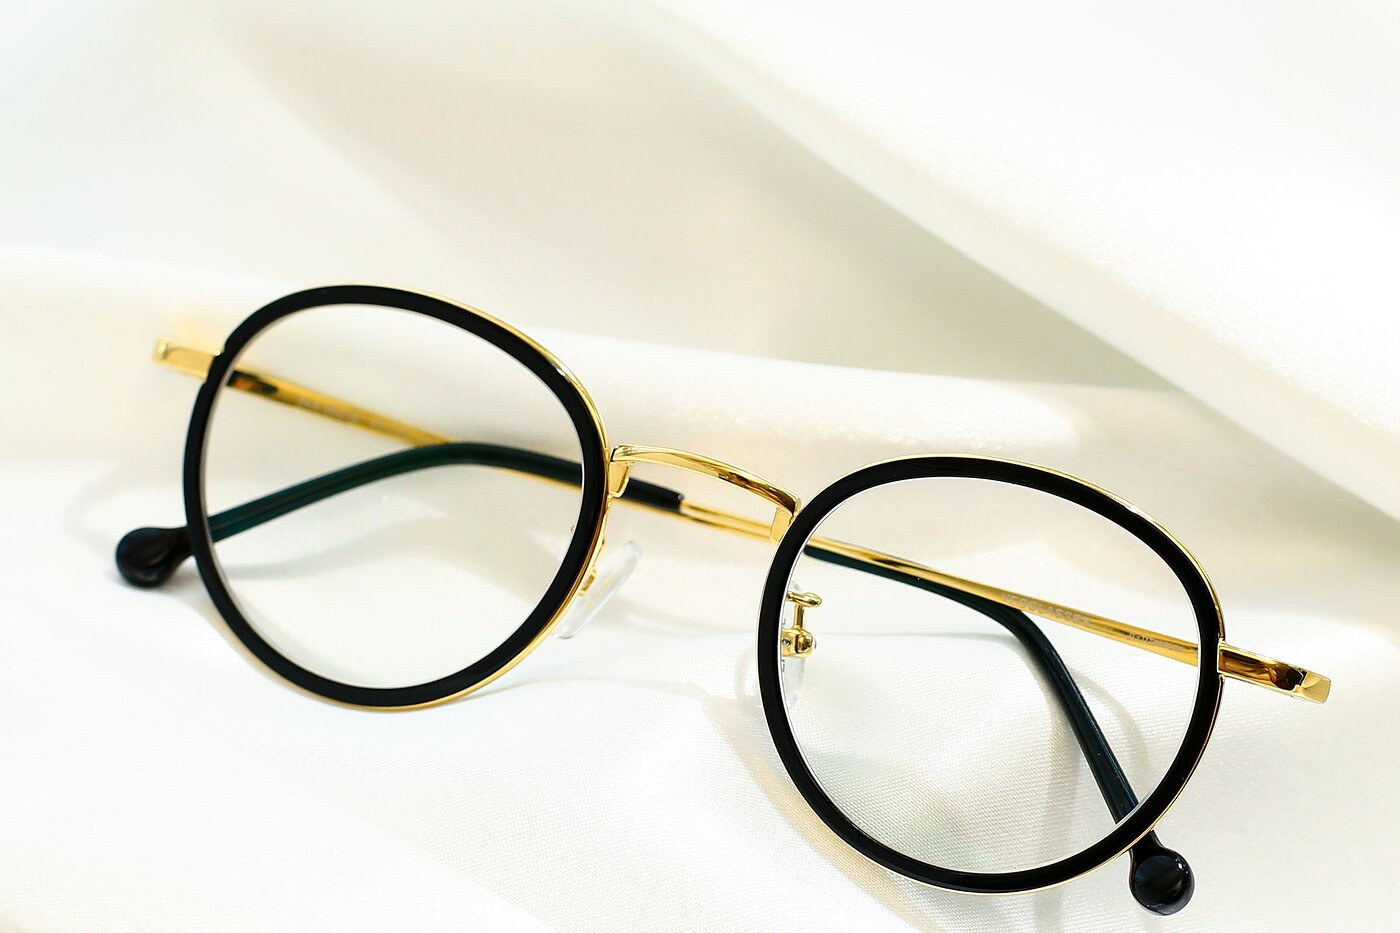 Black-Gold Retro-Vintage Lightweight Round Eyeglasses